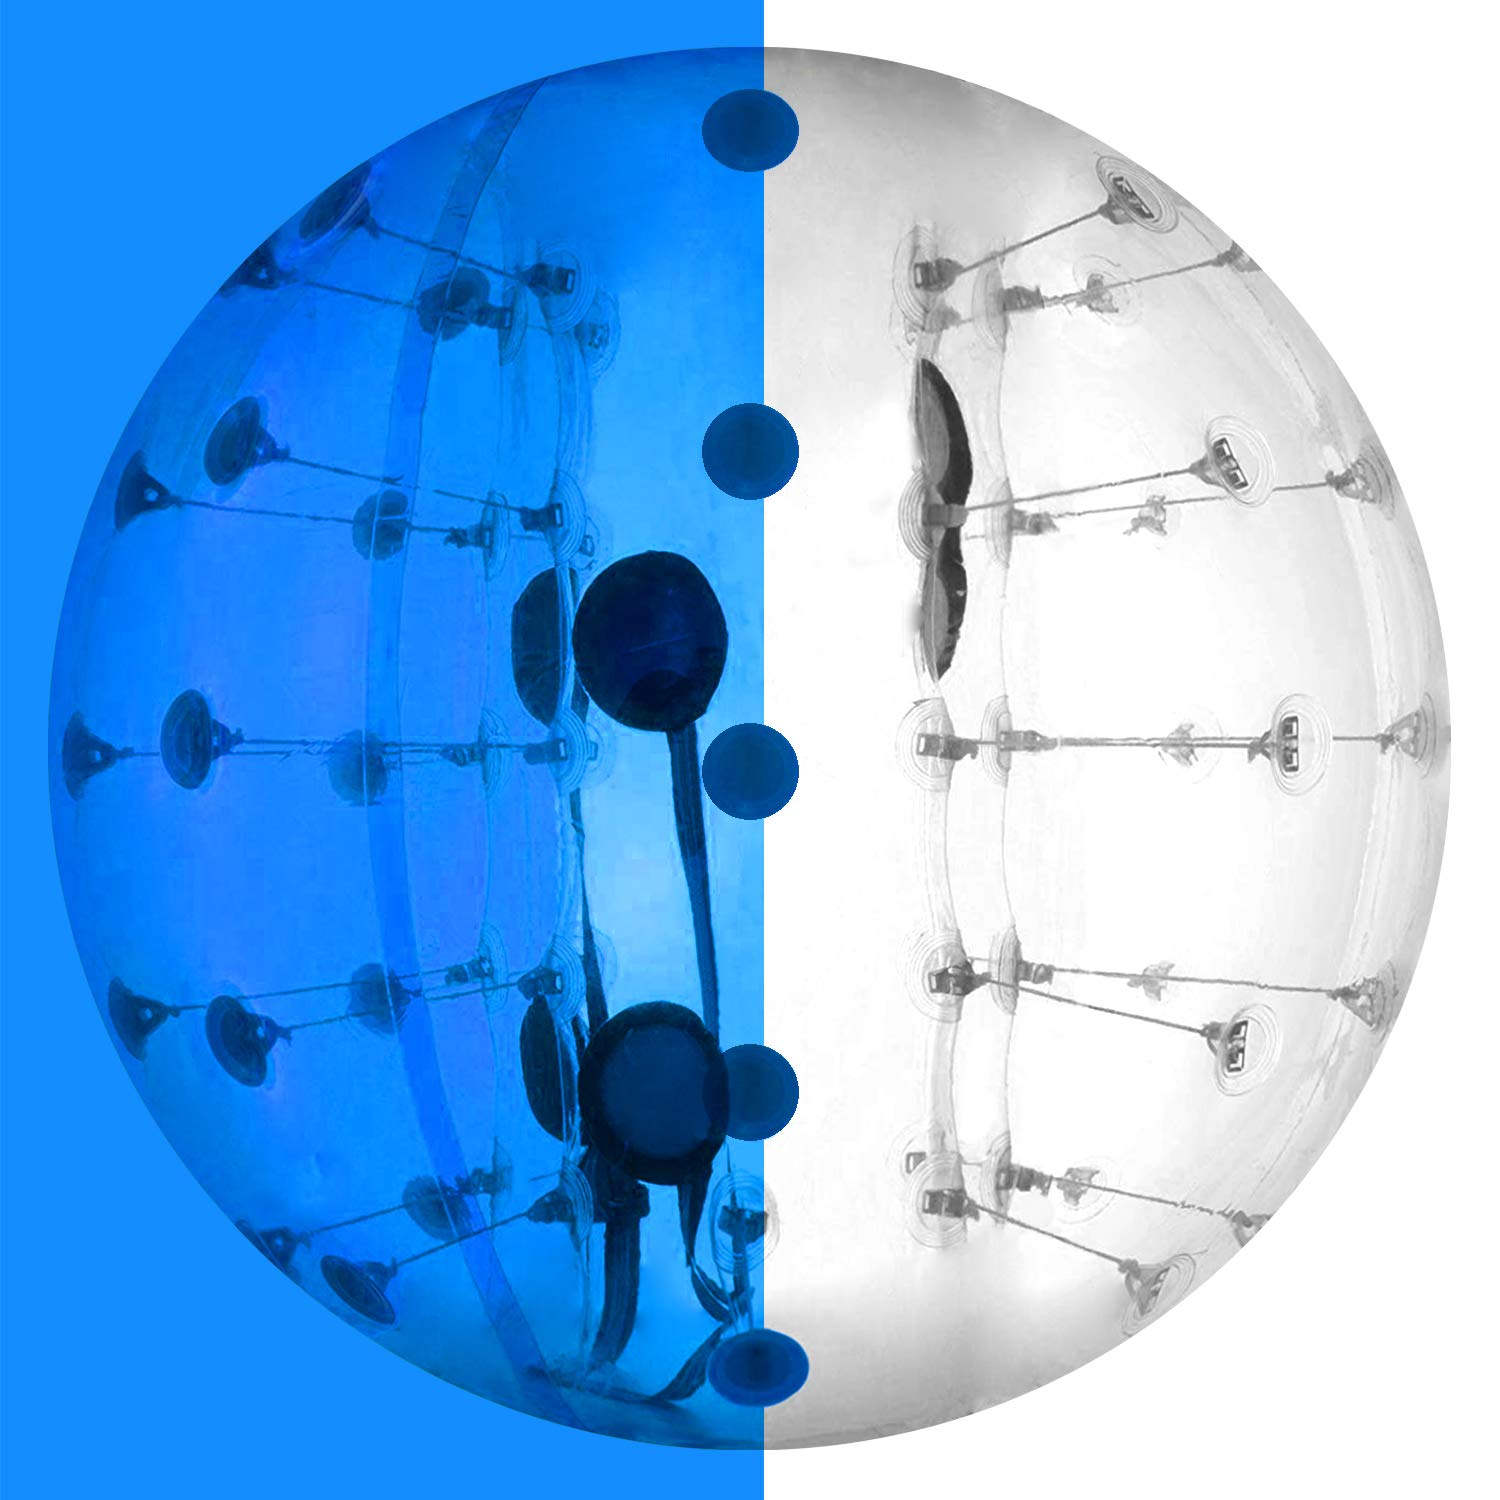 Happybuy Inflatable Bumper Ball 1.2M/4ft 1.5M/5ft Diameter Bubble Soccer Ball Blow Up Toy in 5 Min Inflatable Bumper Bubble Balls for Adults or Child (Half Blue, 4ft) by Happybuy (Image #2)